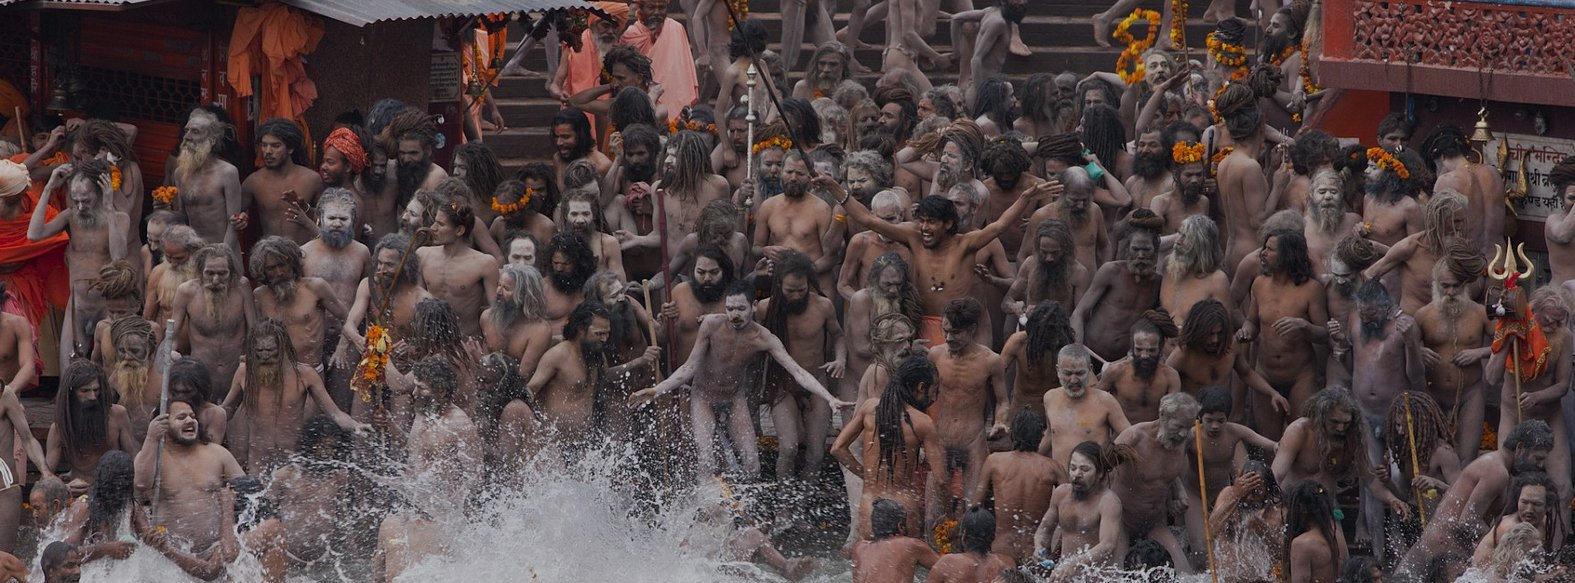 Kumbh Mela Bathing Destinations